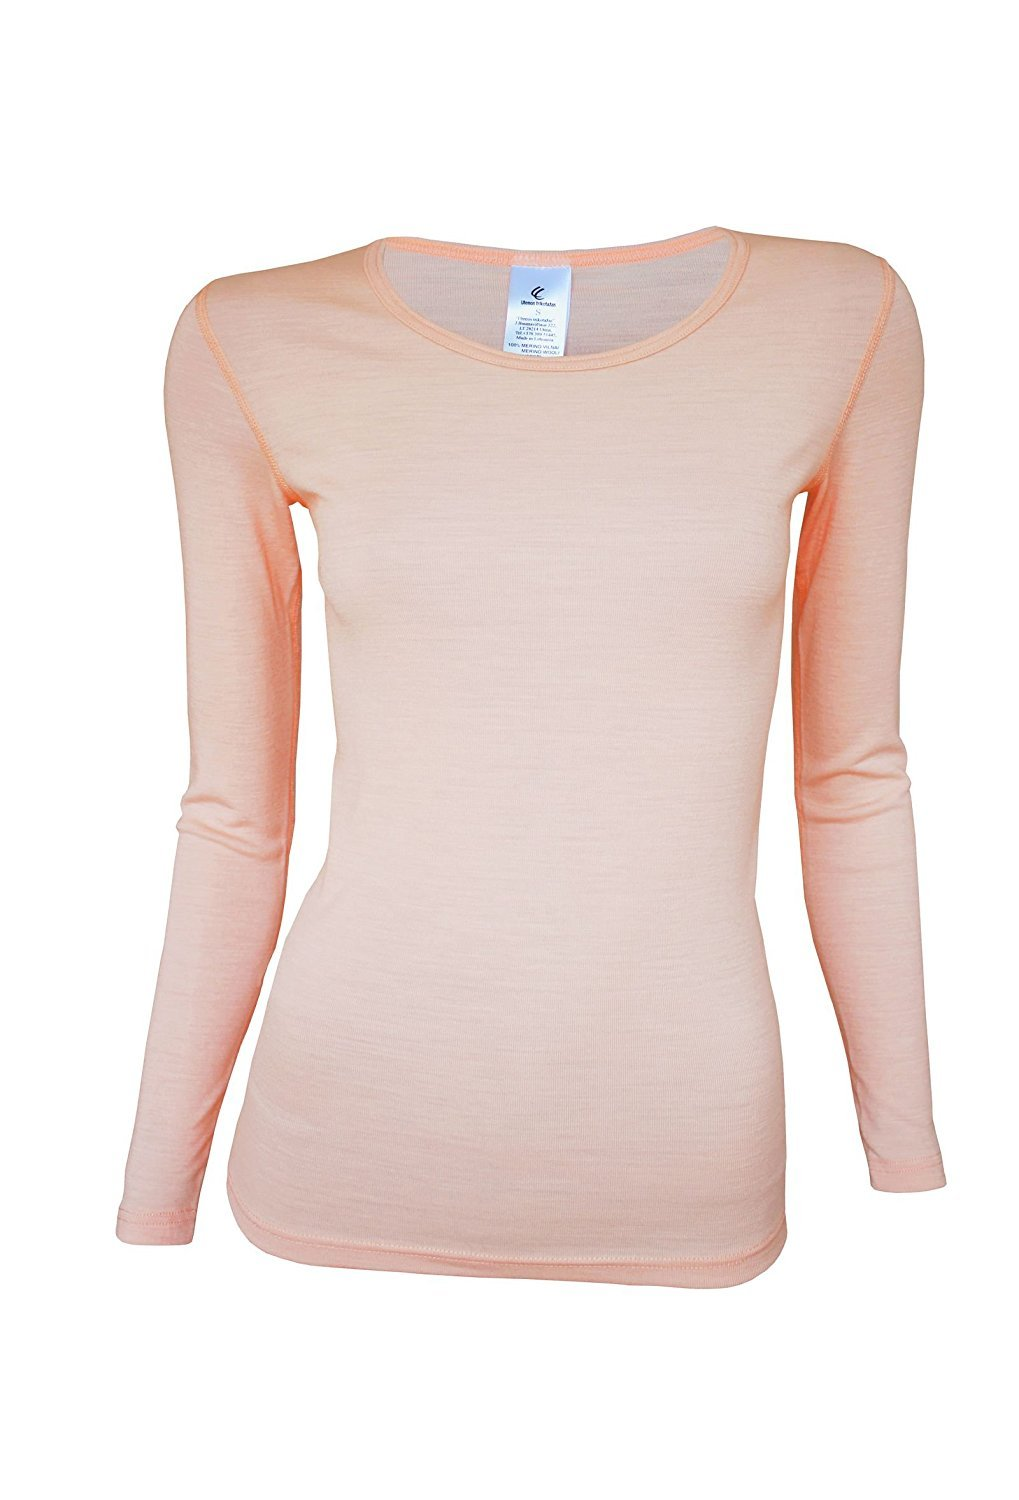 Amazon.com : Utenos Merino Wool Ultra Soft Woman Longsleeve Shirt Base Layer Made in Europe Union : Sports & Outdoors